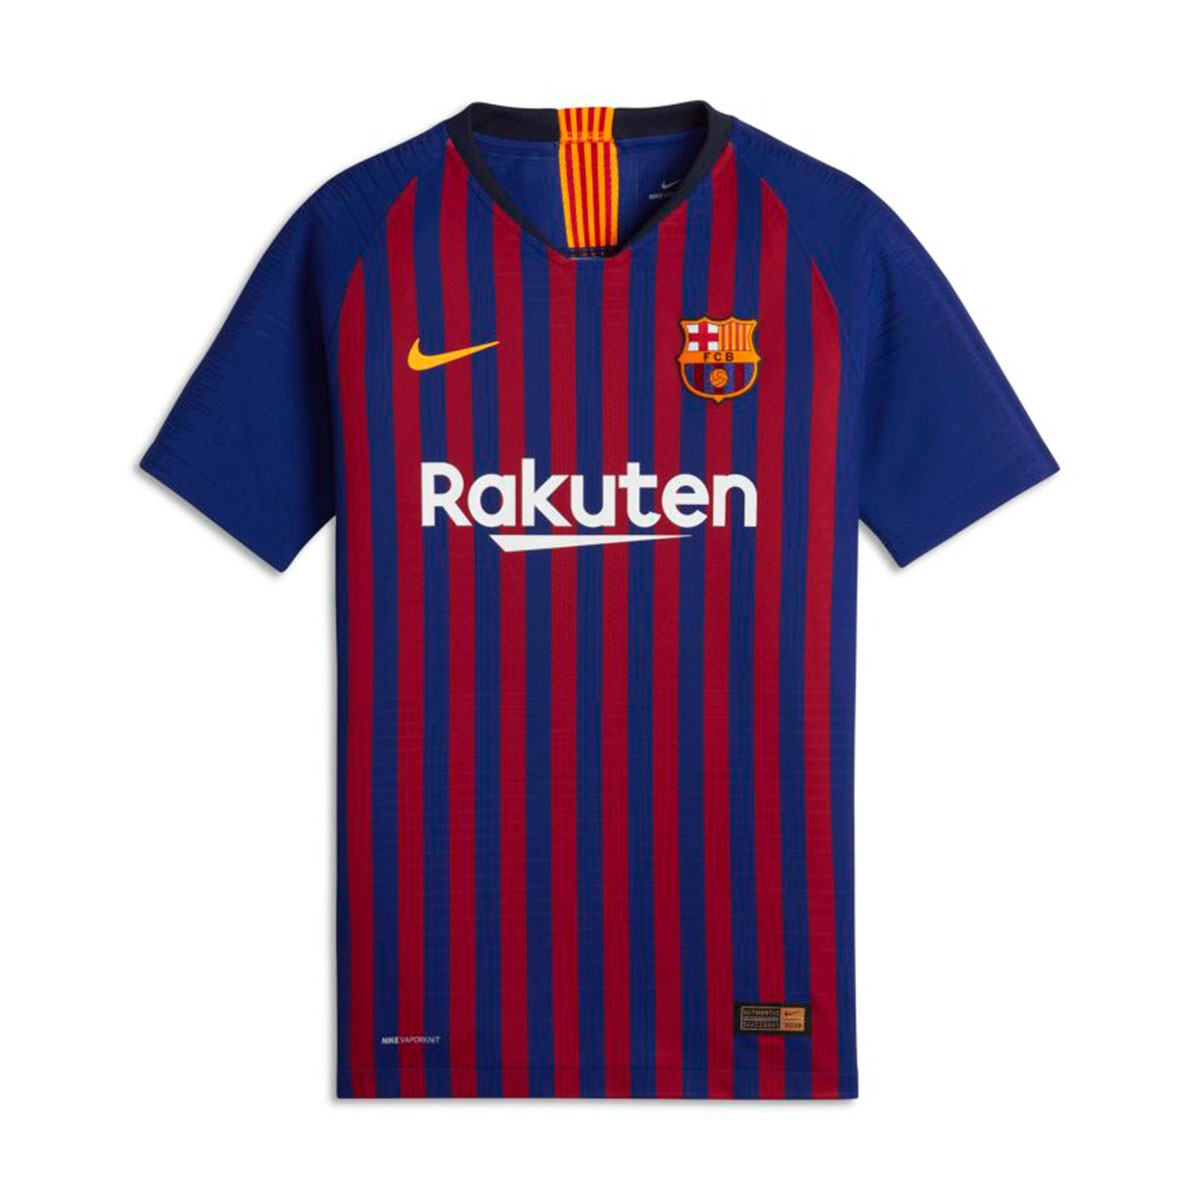 8089508dce415 Jersey Nike Kids FC Barcelona Vapor 2018-2019 Home Deep royal blue ...